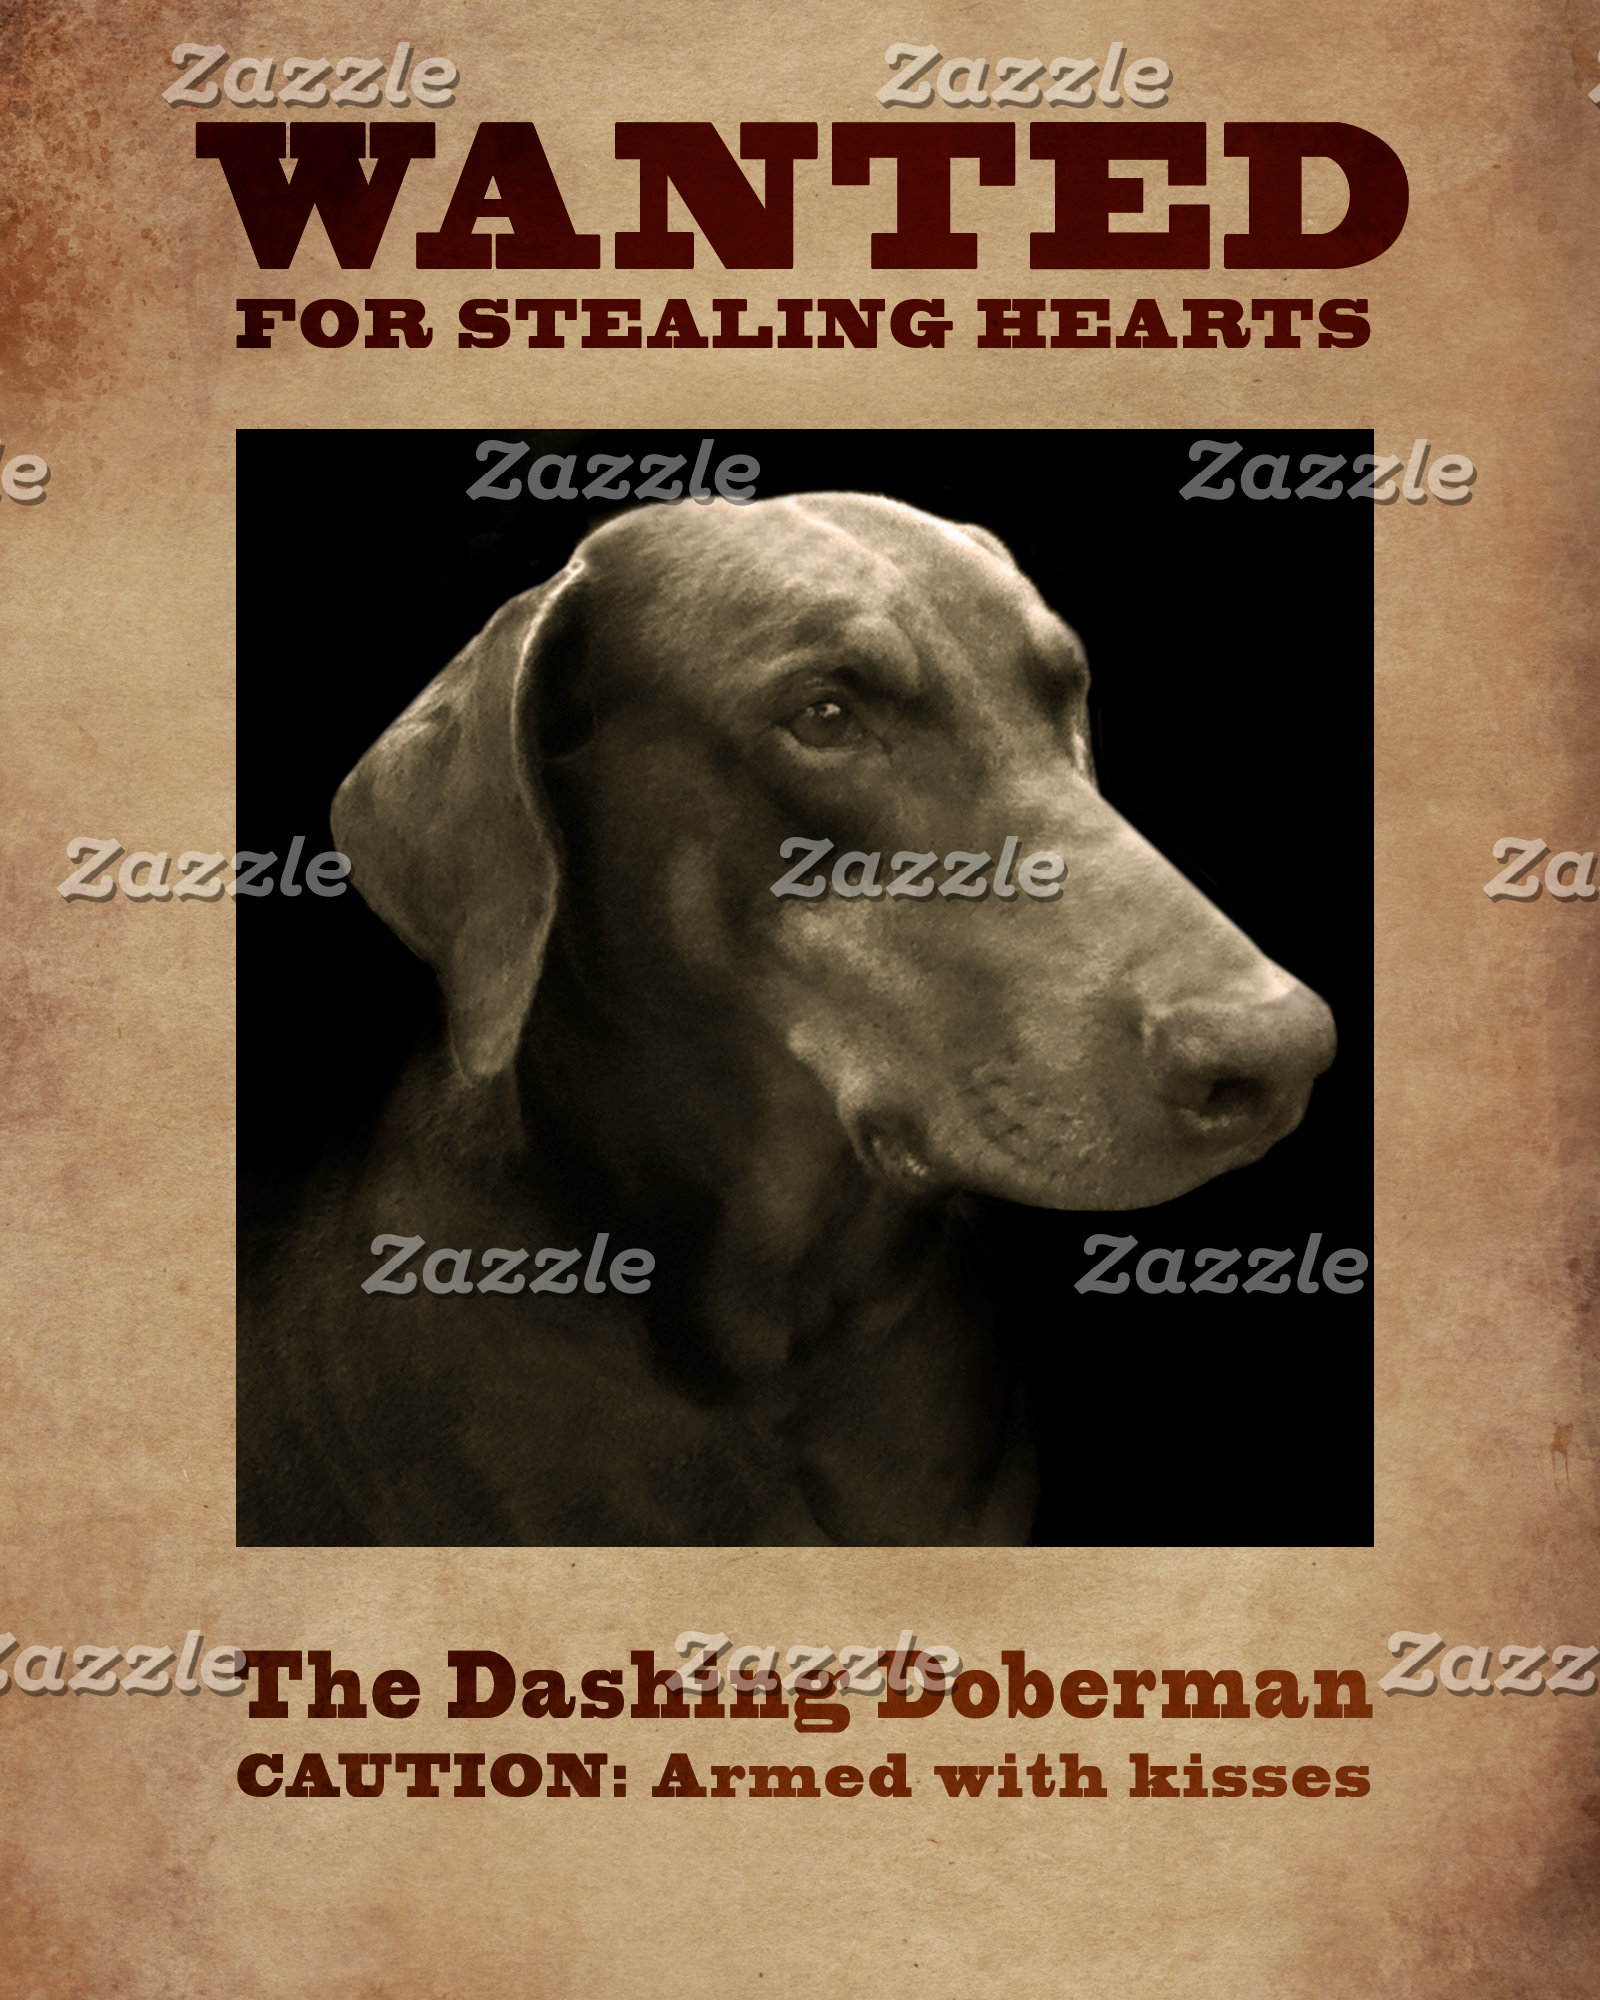 The Dashing Doberman